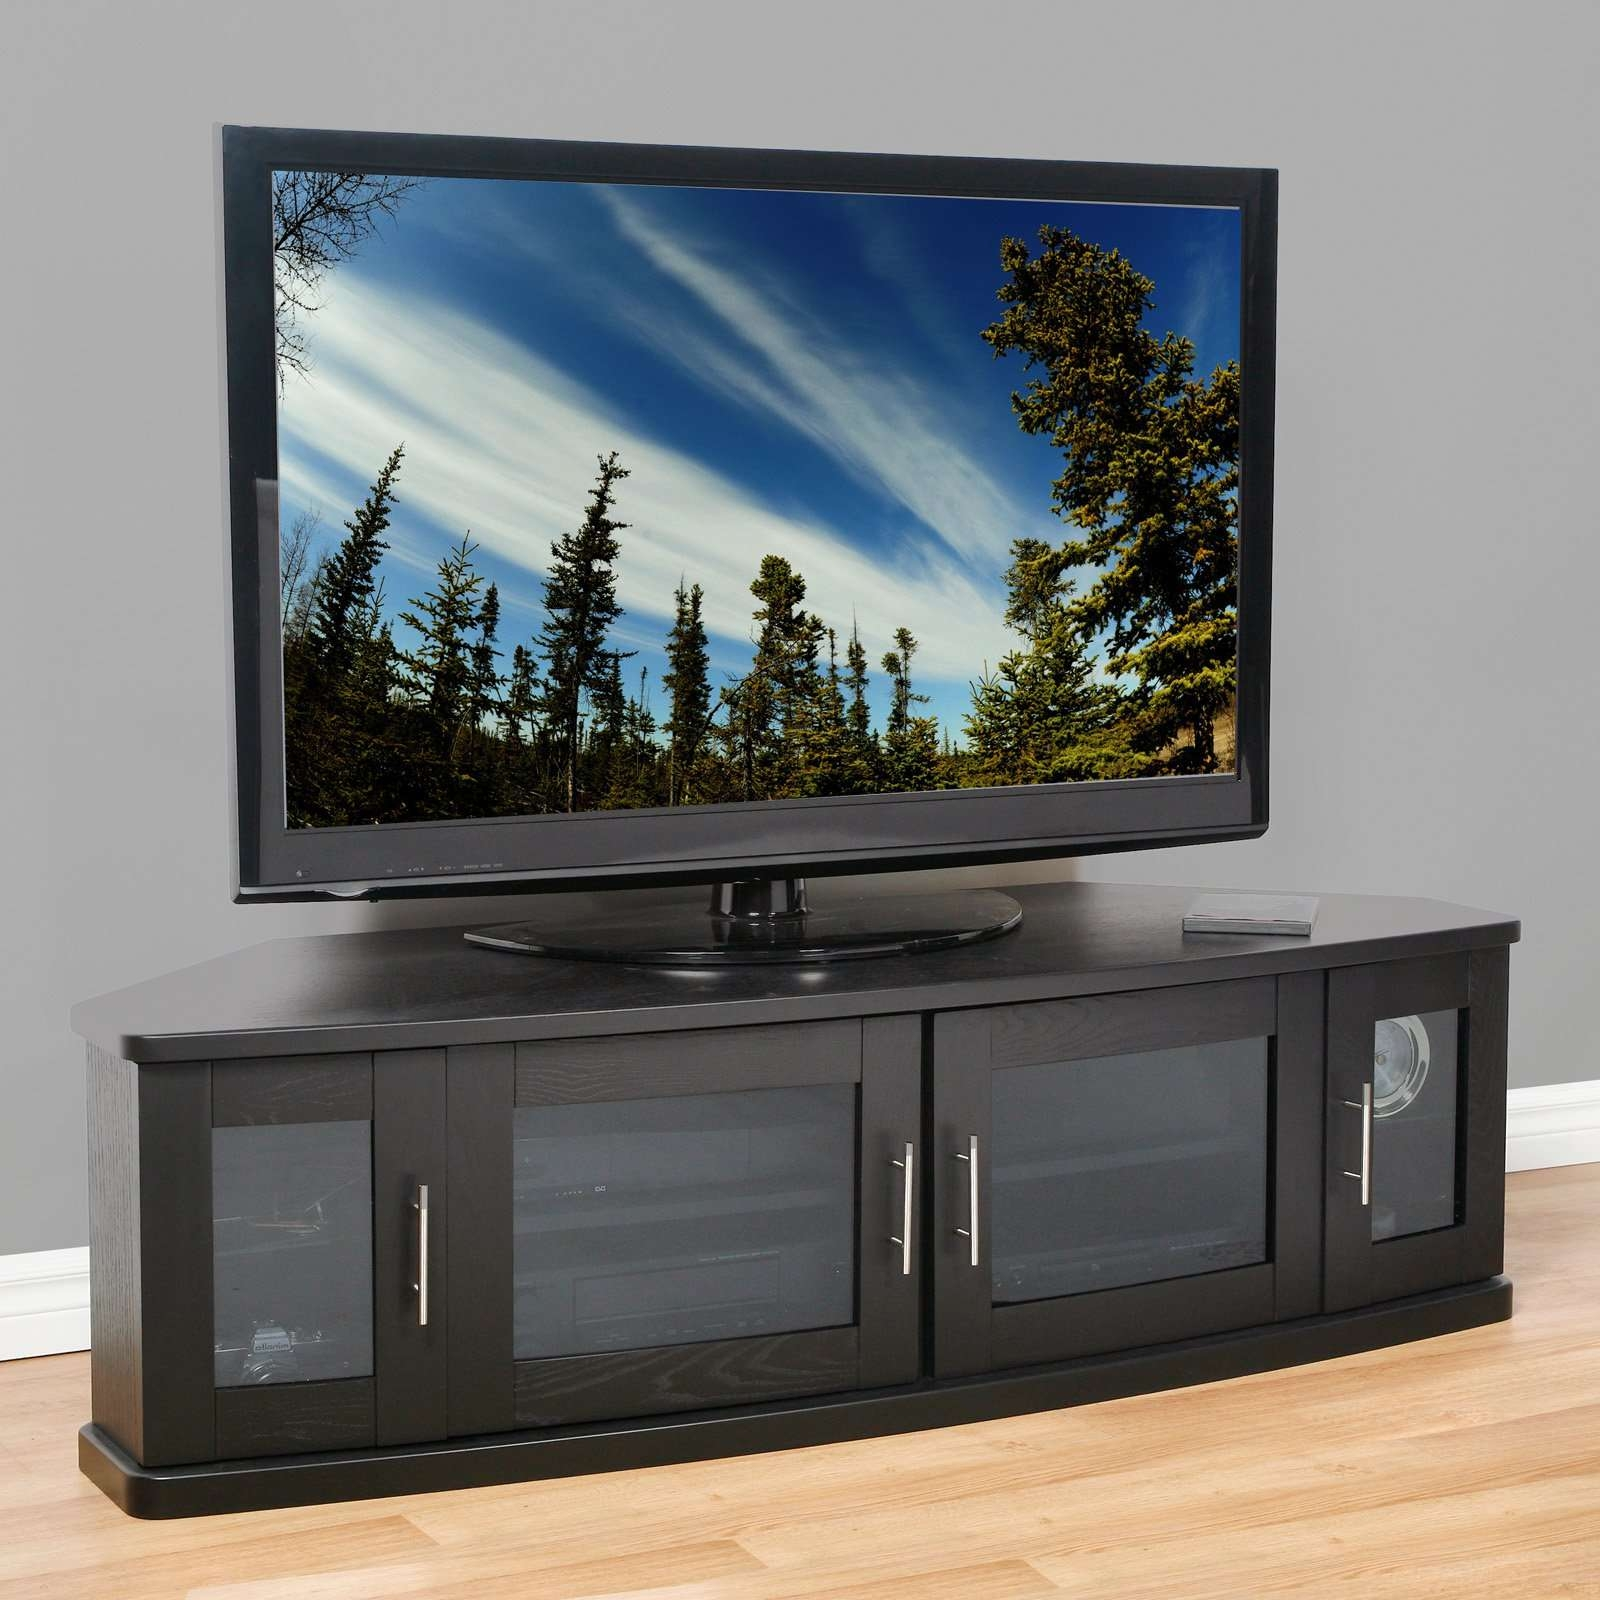 Modern Black Wooden Tv Stand With Frosted Glass Doors Of Dazzling Within Black Tv Stands With Glass Doors (View 6 of 15)